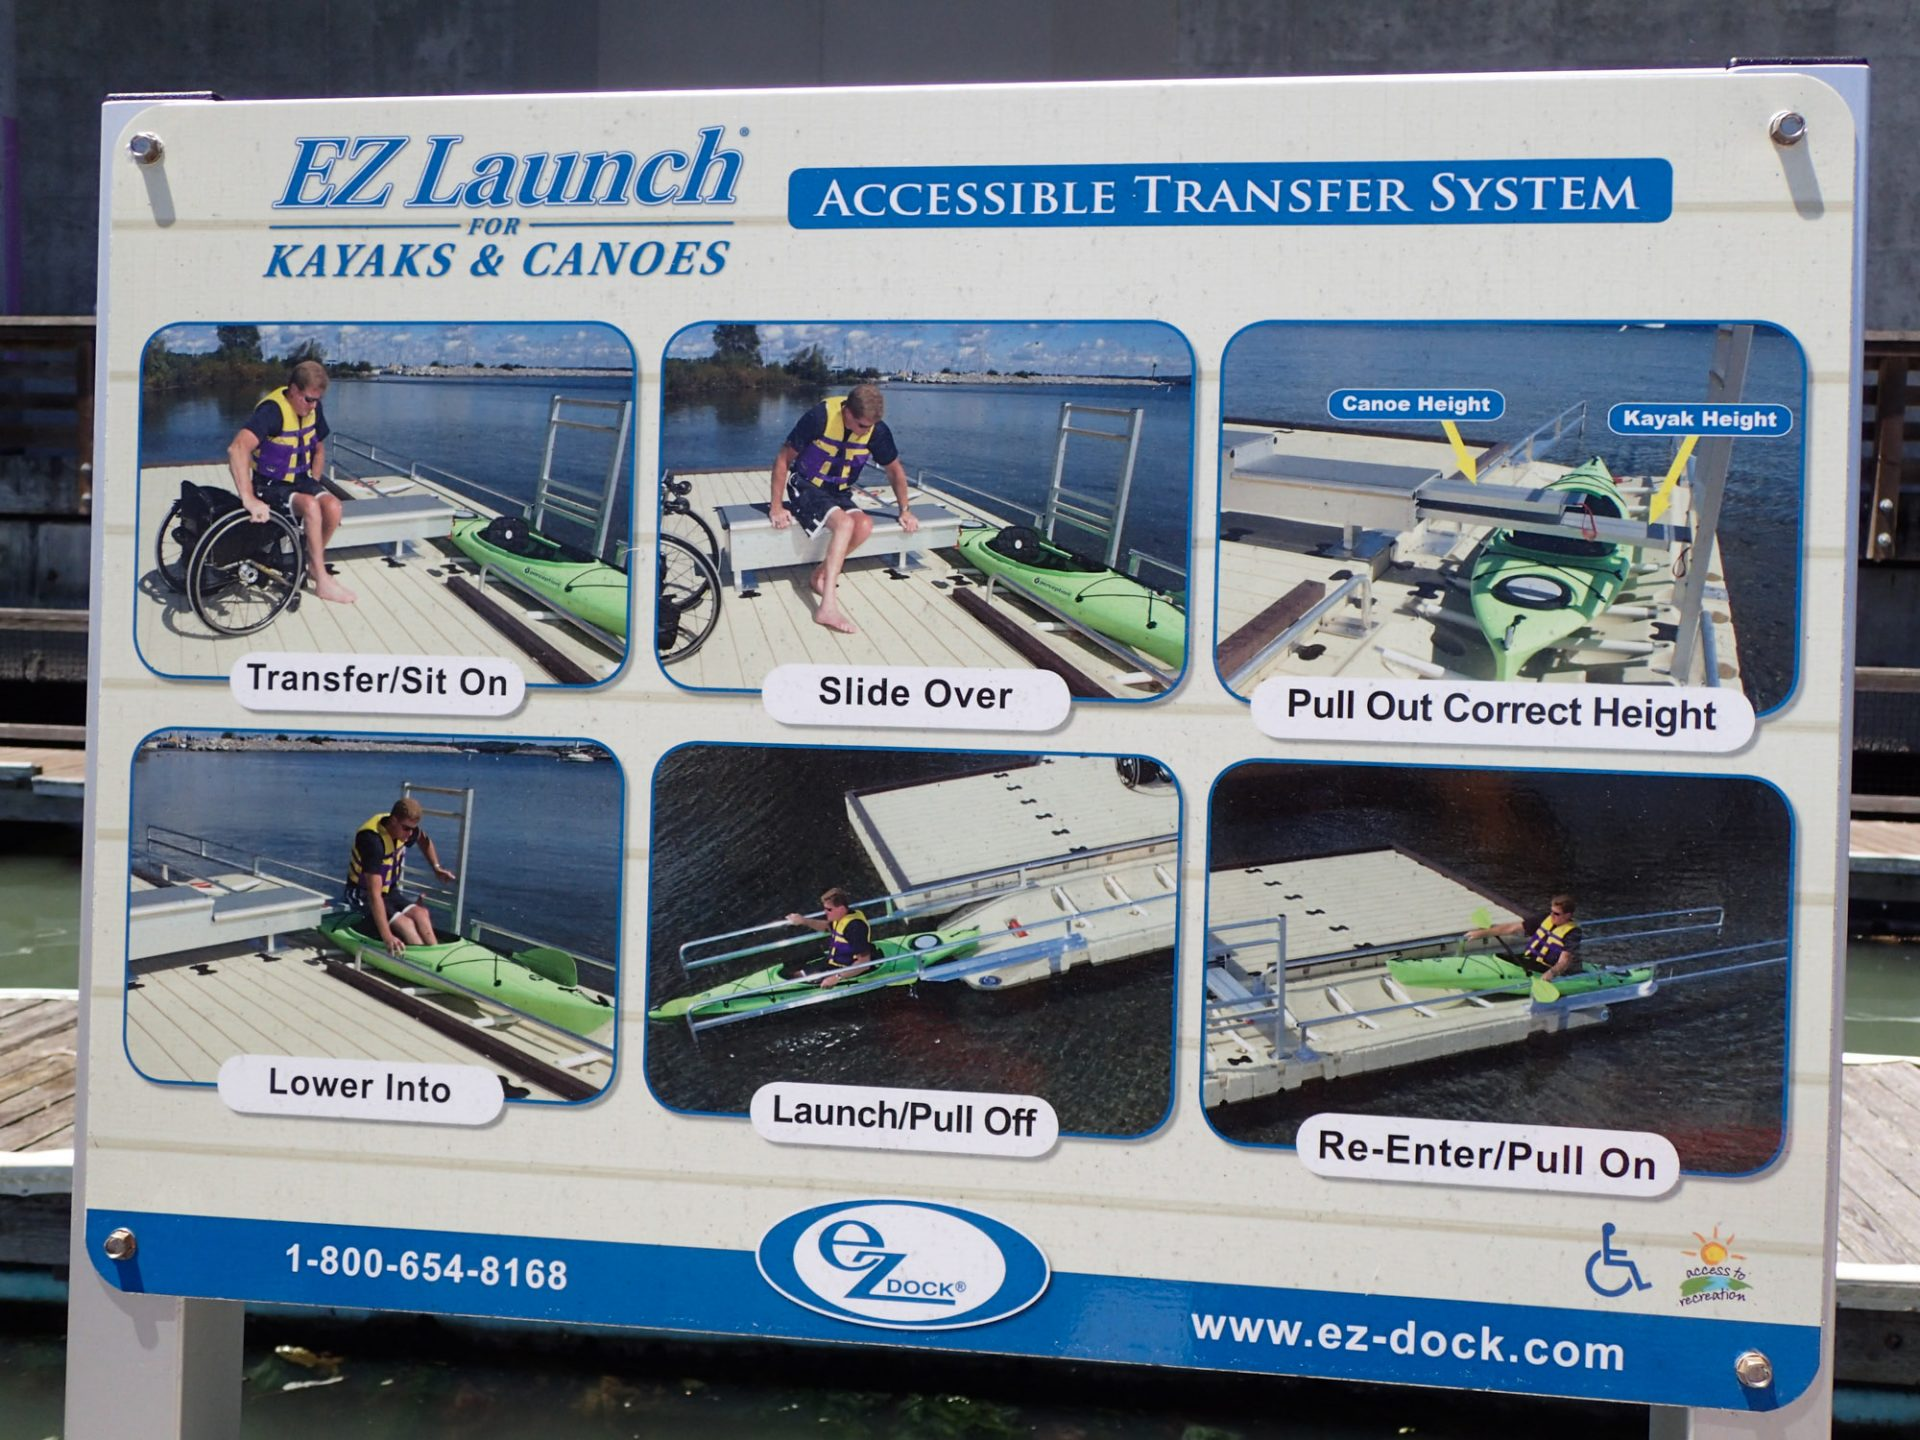 """Sign: """"EZ Launch for Kayaks and Canoes: Accessible Transfer System,"""" with images of a person in a wheelchair getting into a kayak and disembarking: Transfer/sit on, Slide over, Pull out correct height, Lower into, Launch/Pull off, Re-enter/Pull on."""" Phone: 1-800-654-8168, website: www.ez-dock.com"""